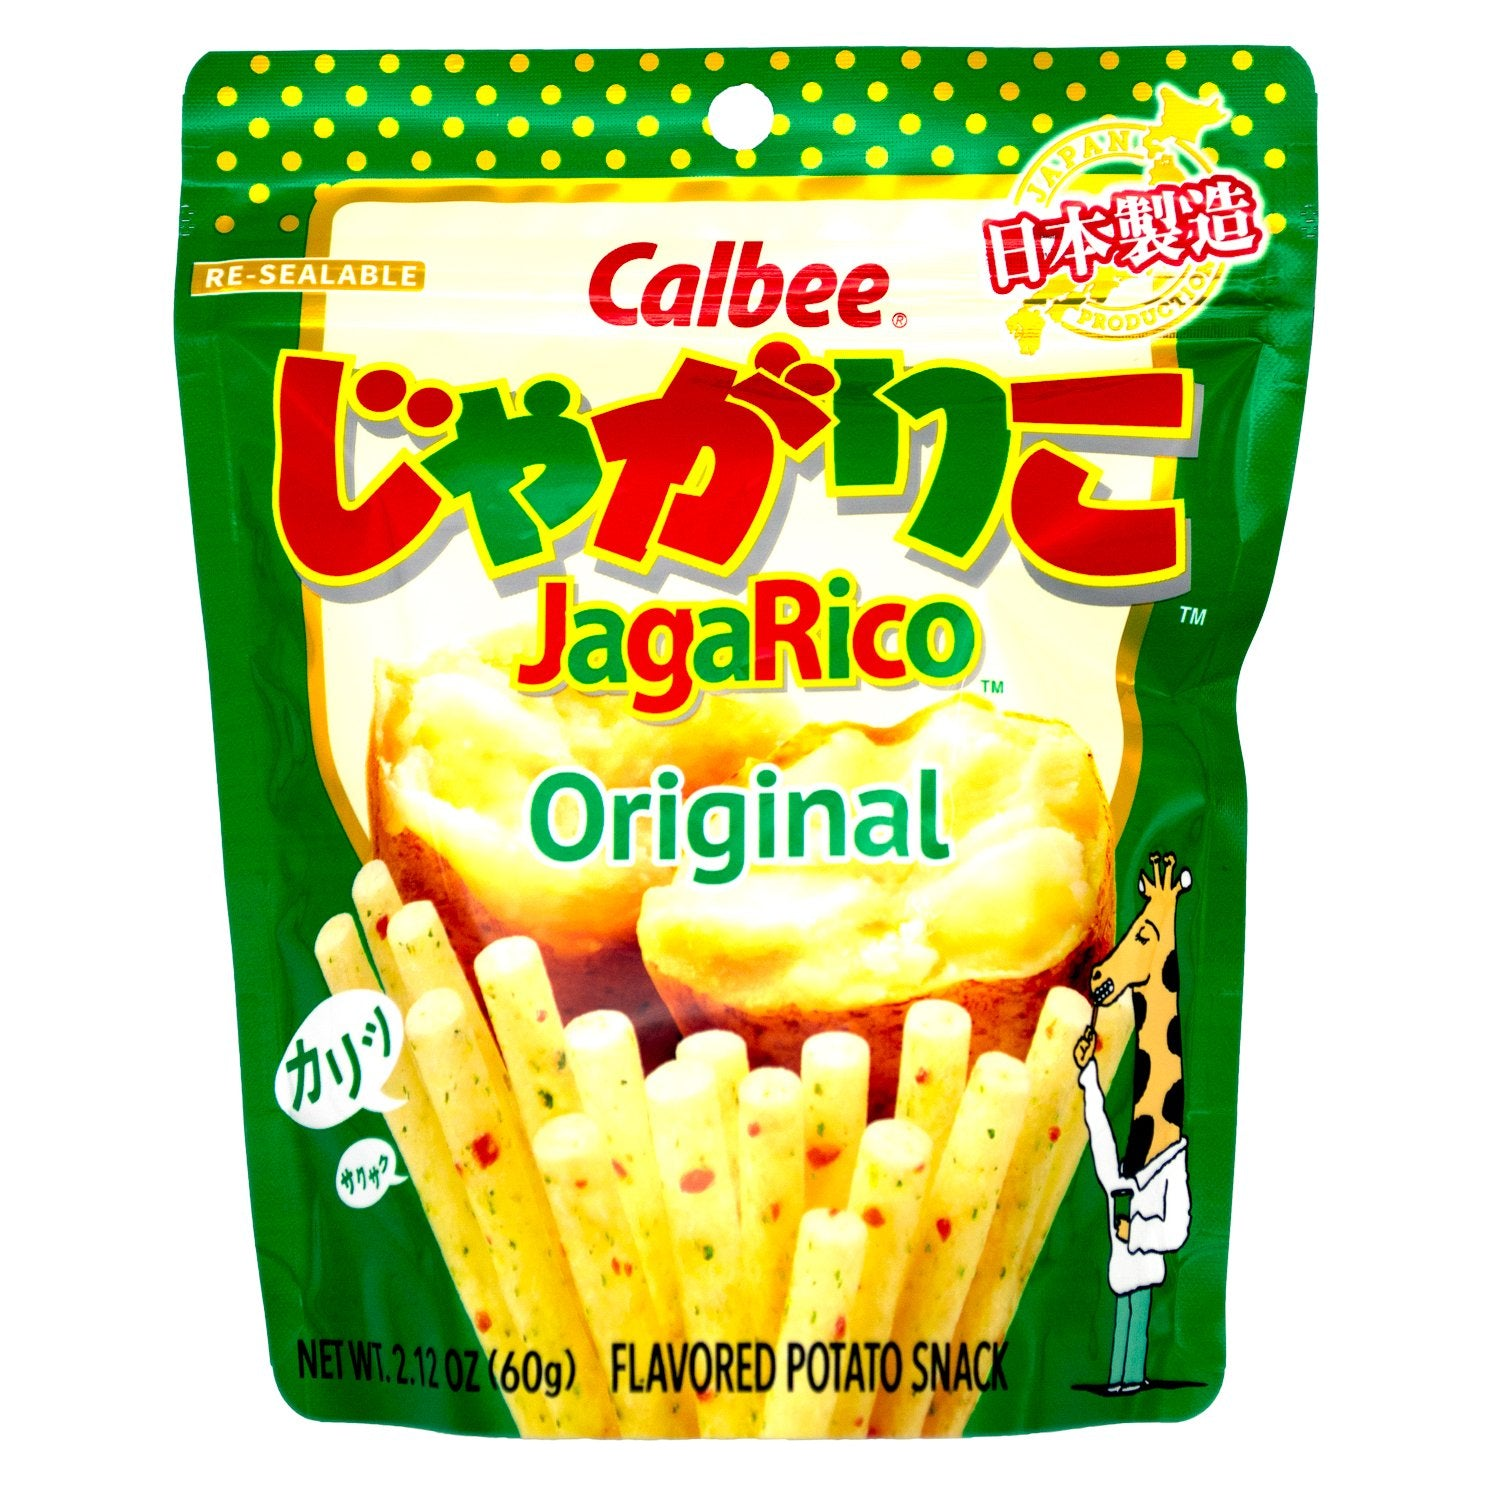 Calbee Jagarico Flavored Potato Snacks Calbee Original 2.12 Ounce